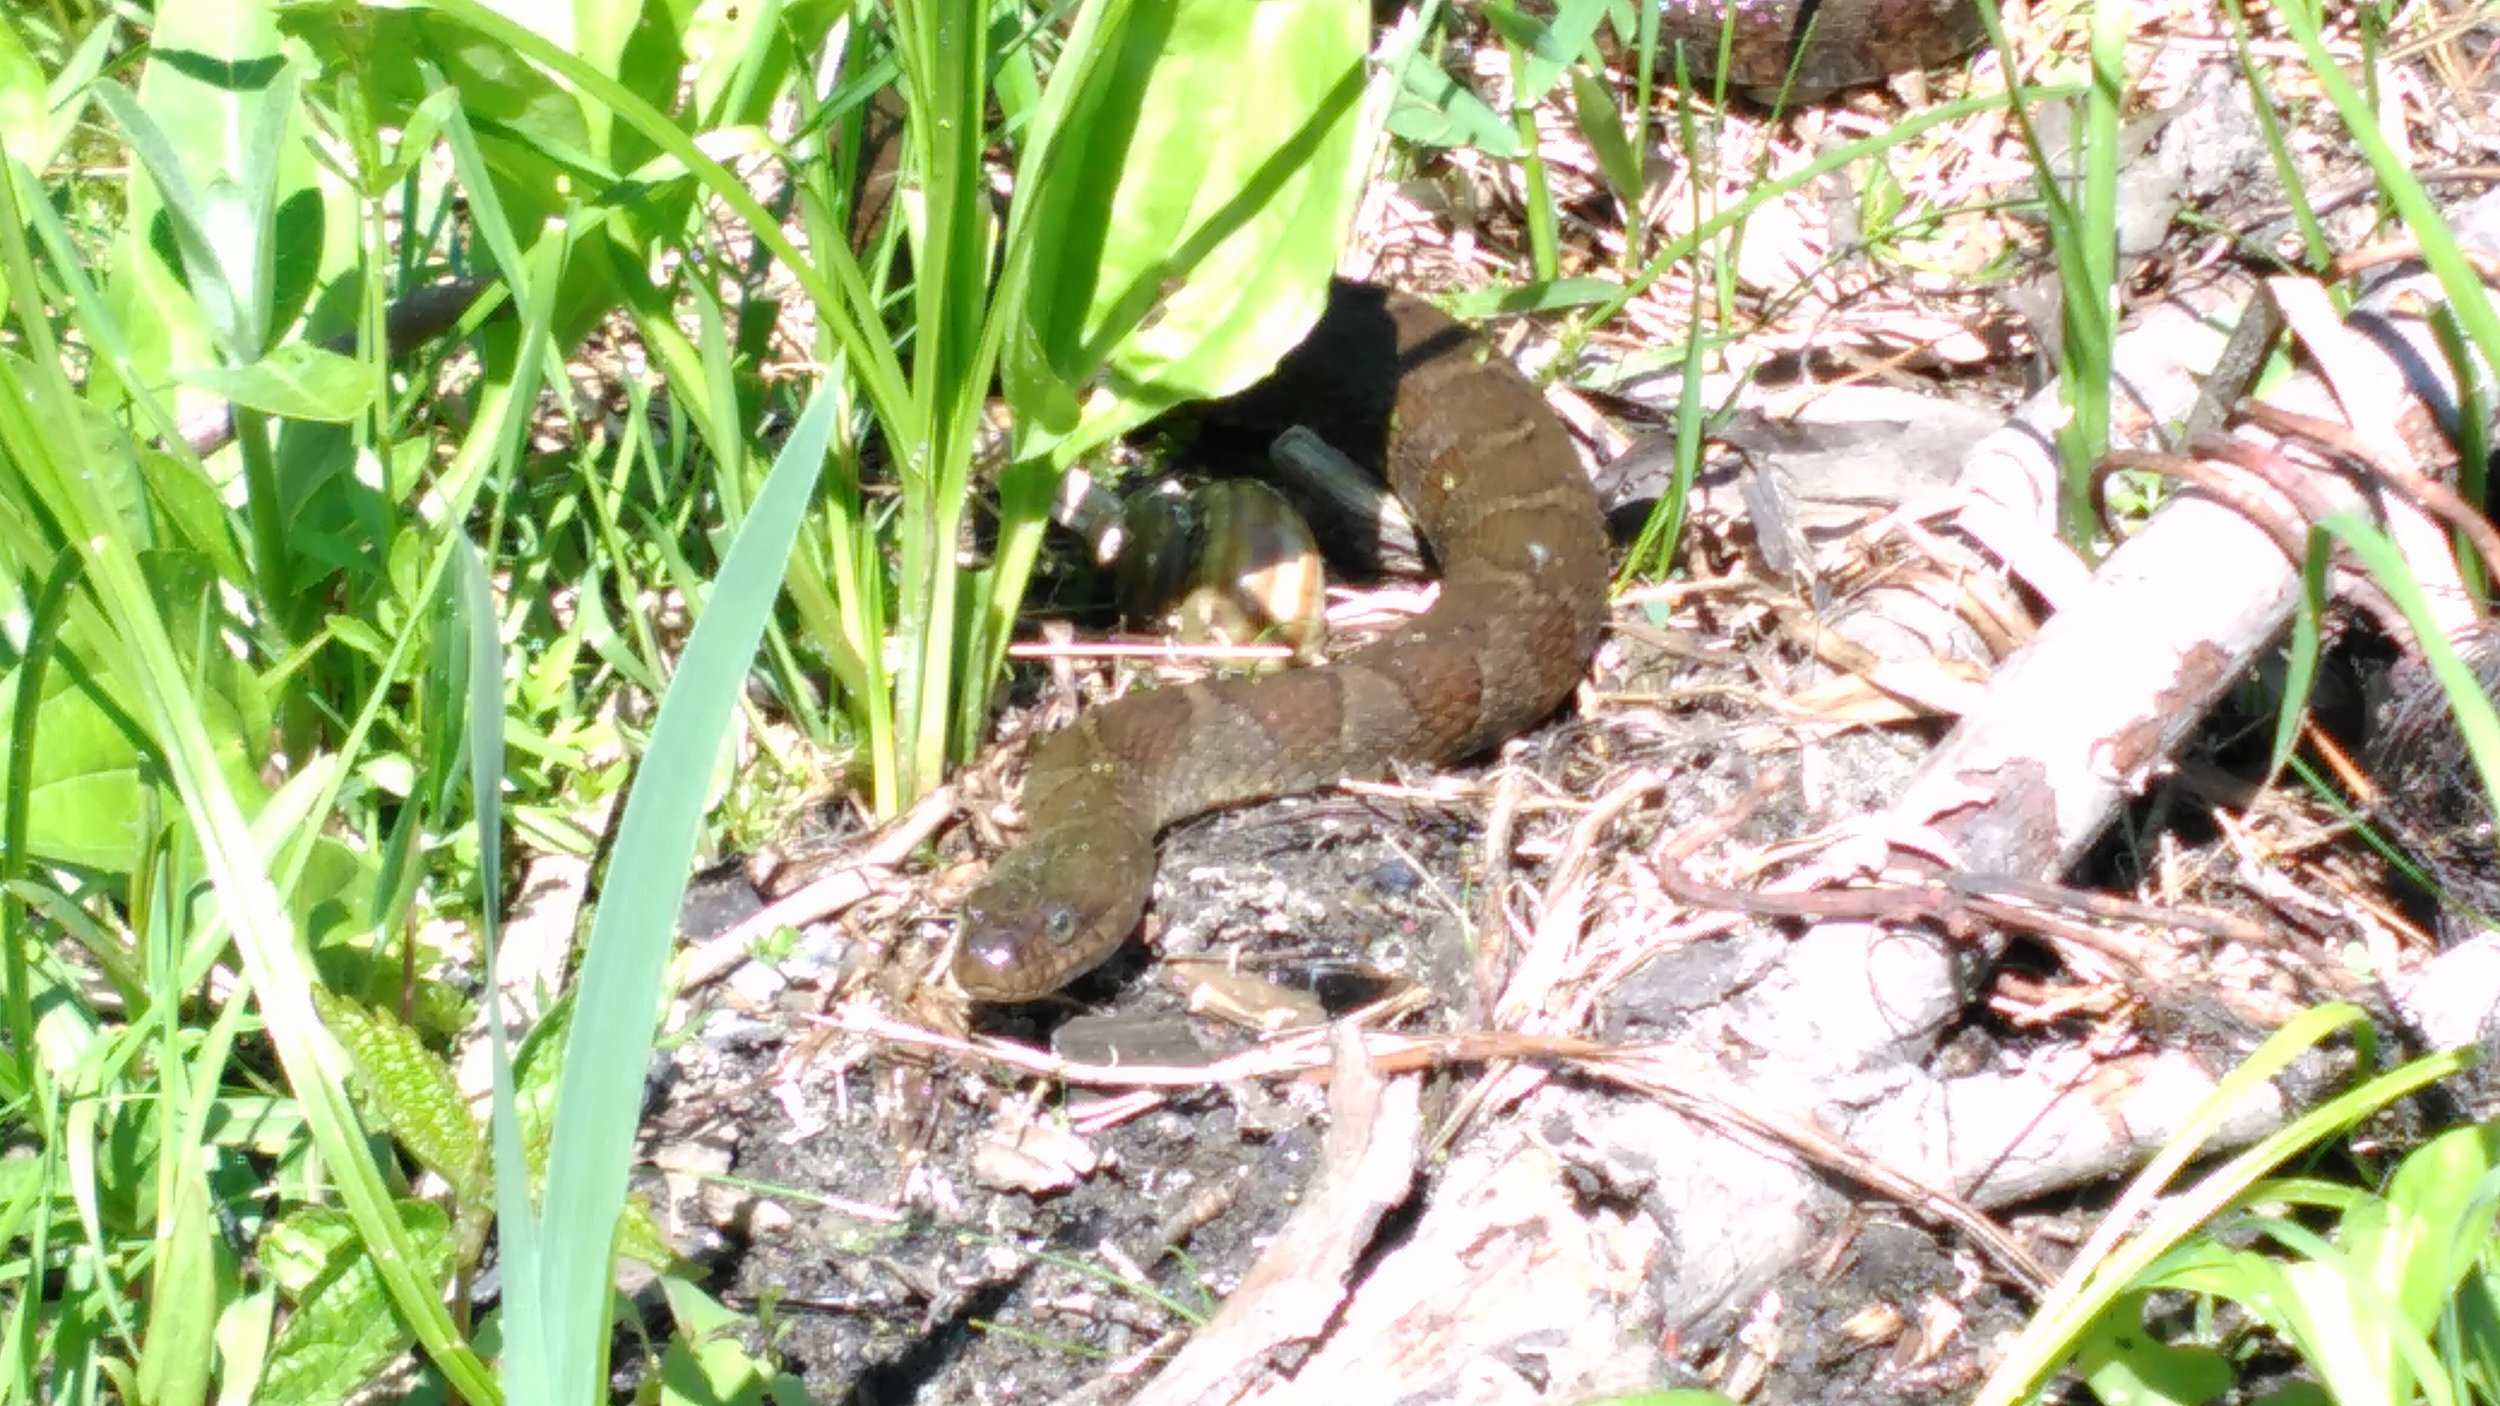 Chaffey's Lock Water Snake